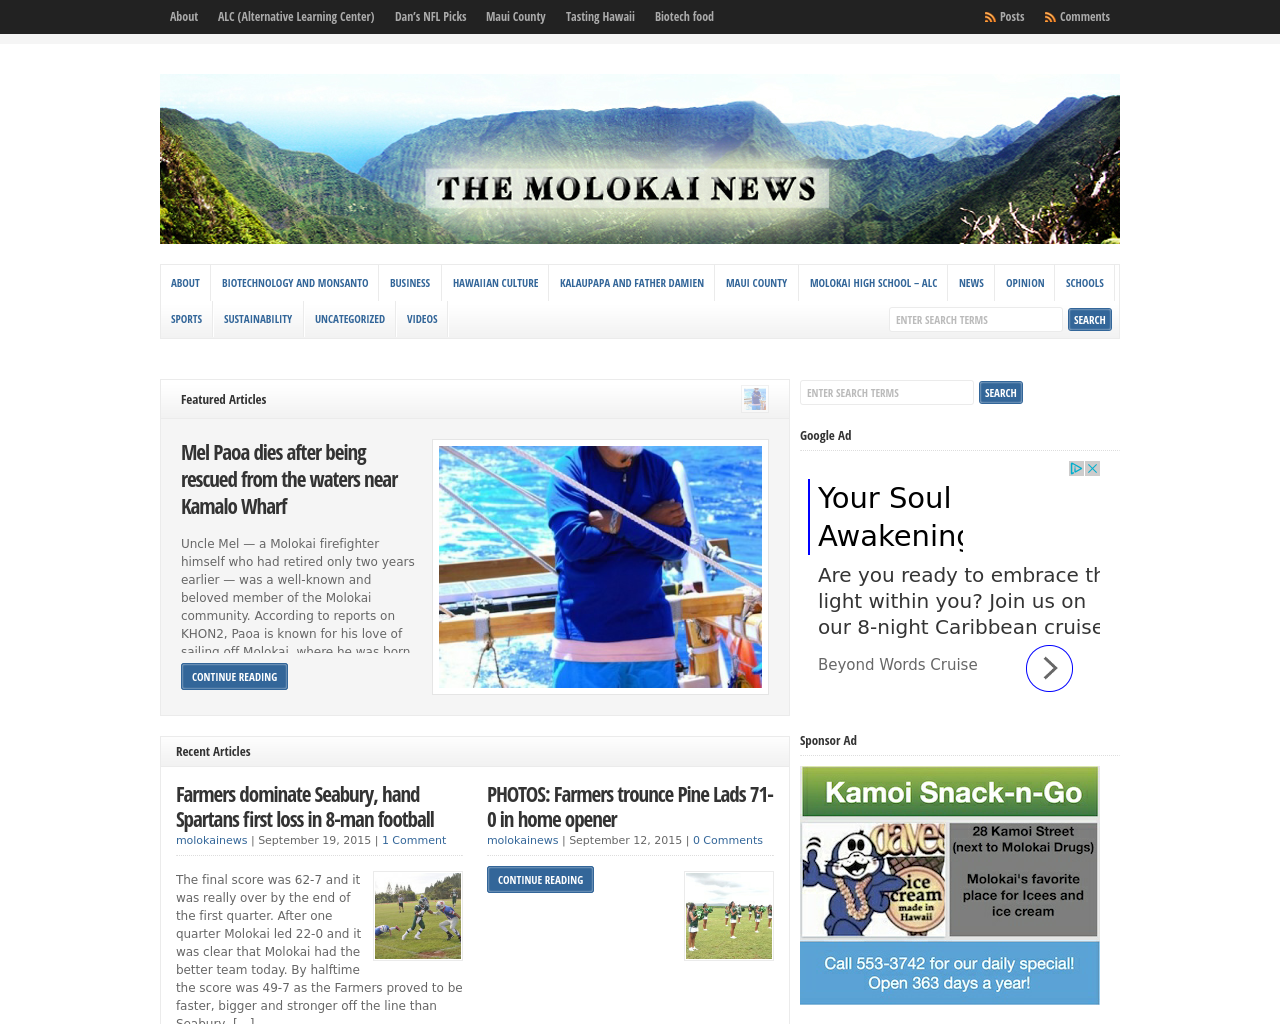 The-Molokai-News-Advertising-Reviews-Pricing